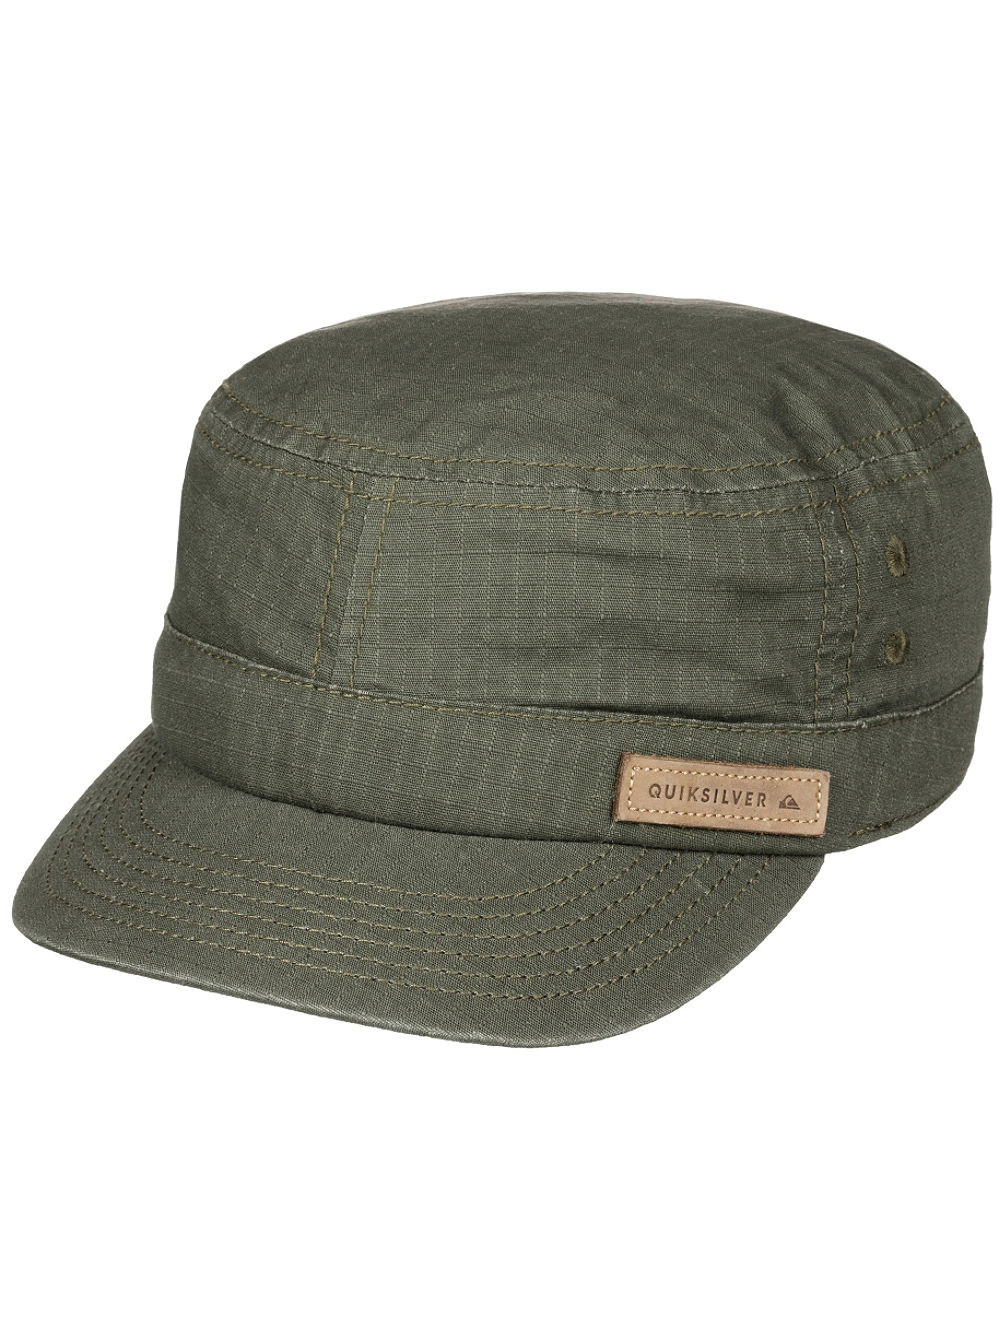 8e10e6e3328 Buy Quiksilver Renegade 2 Cap online at blue-tomato.com